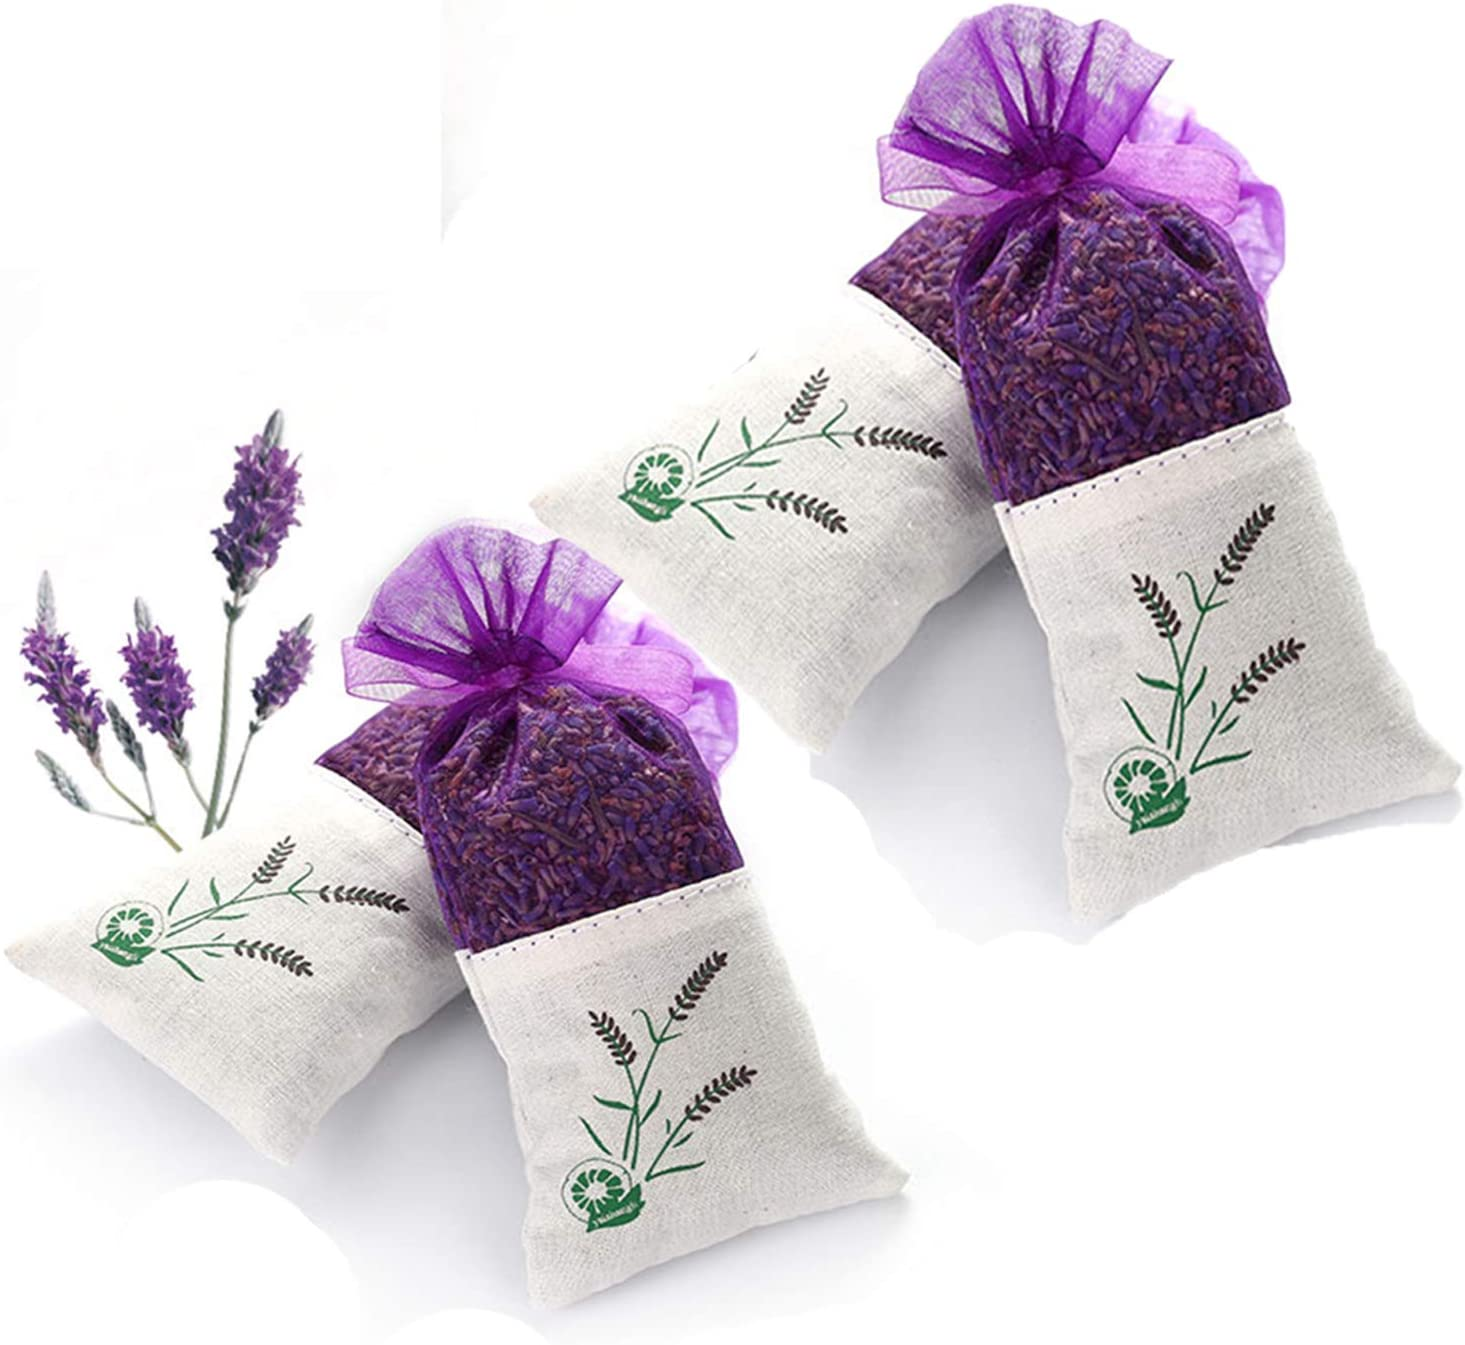 Moth Repellent Prevention for Handknits Wool Yarn Fiber Storage Organic Lavender Cedar Sachets Five Sizes Available